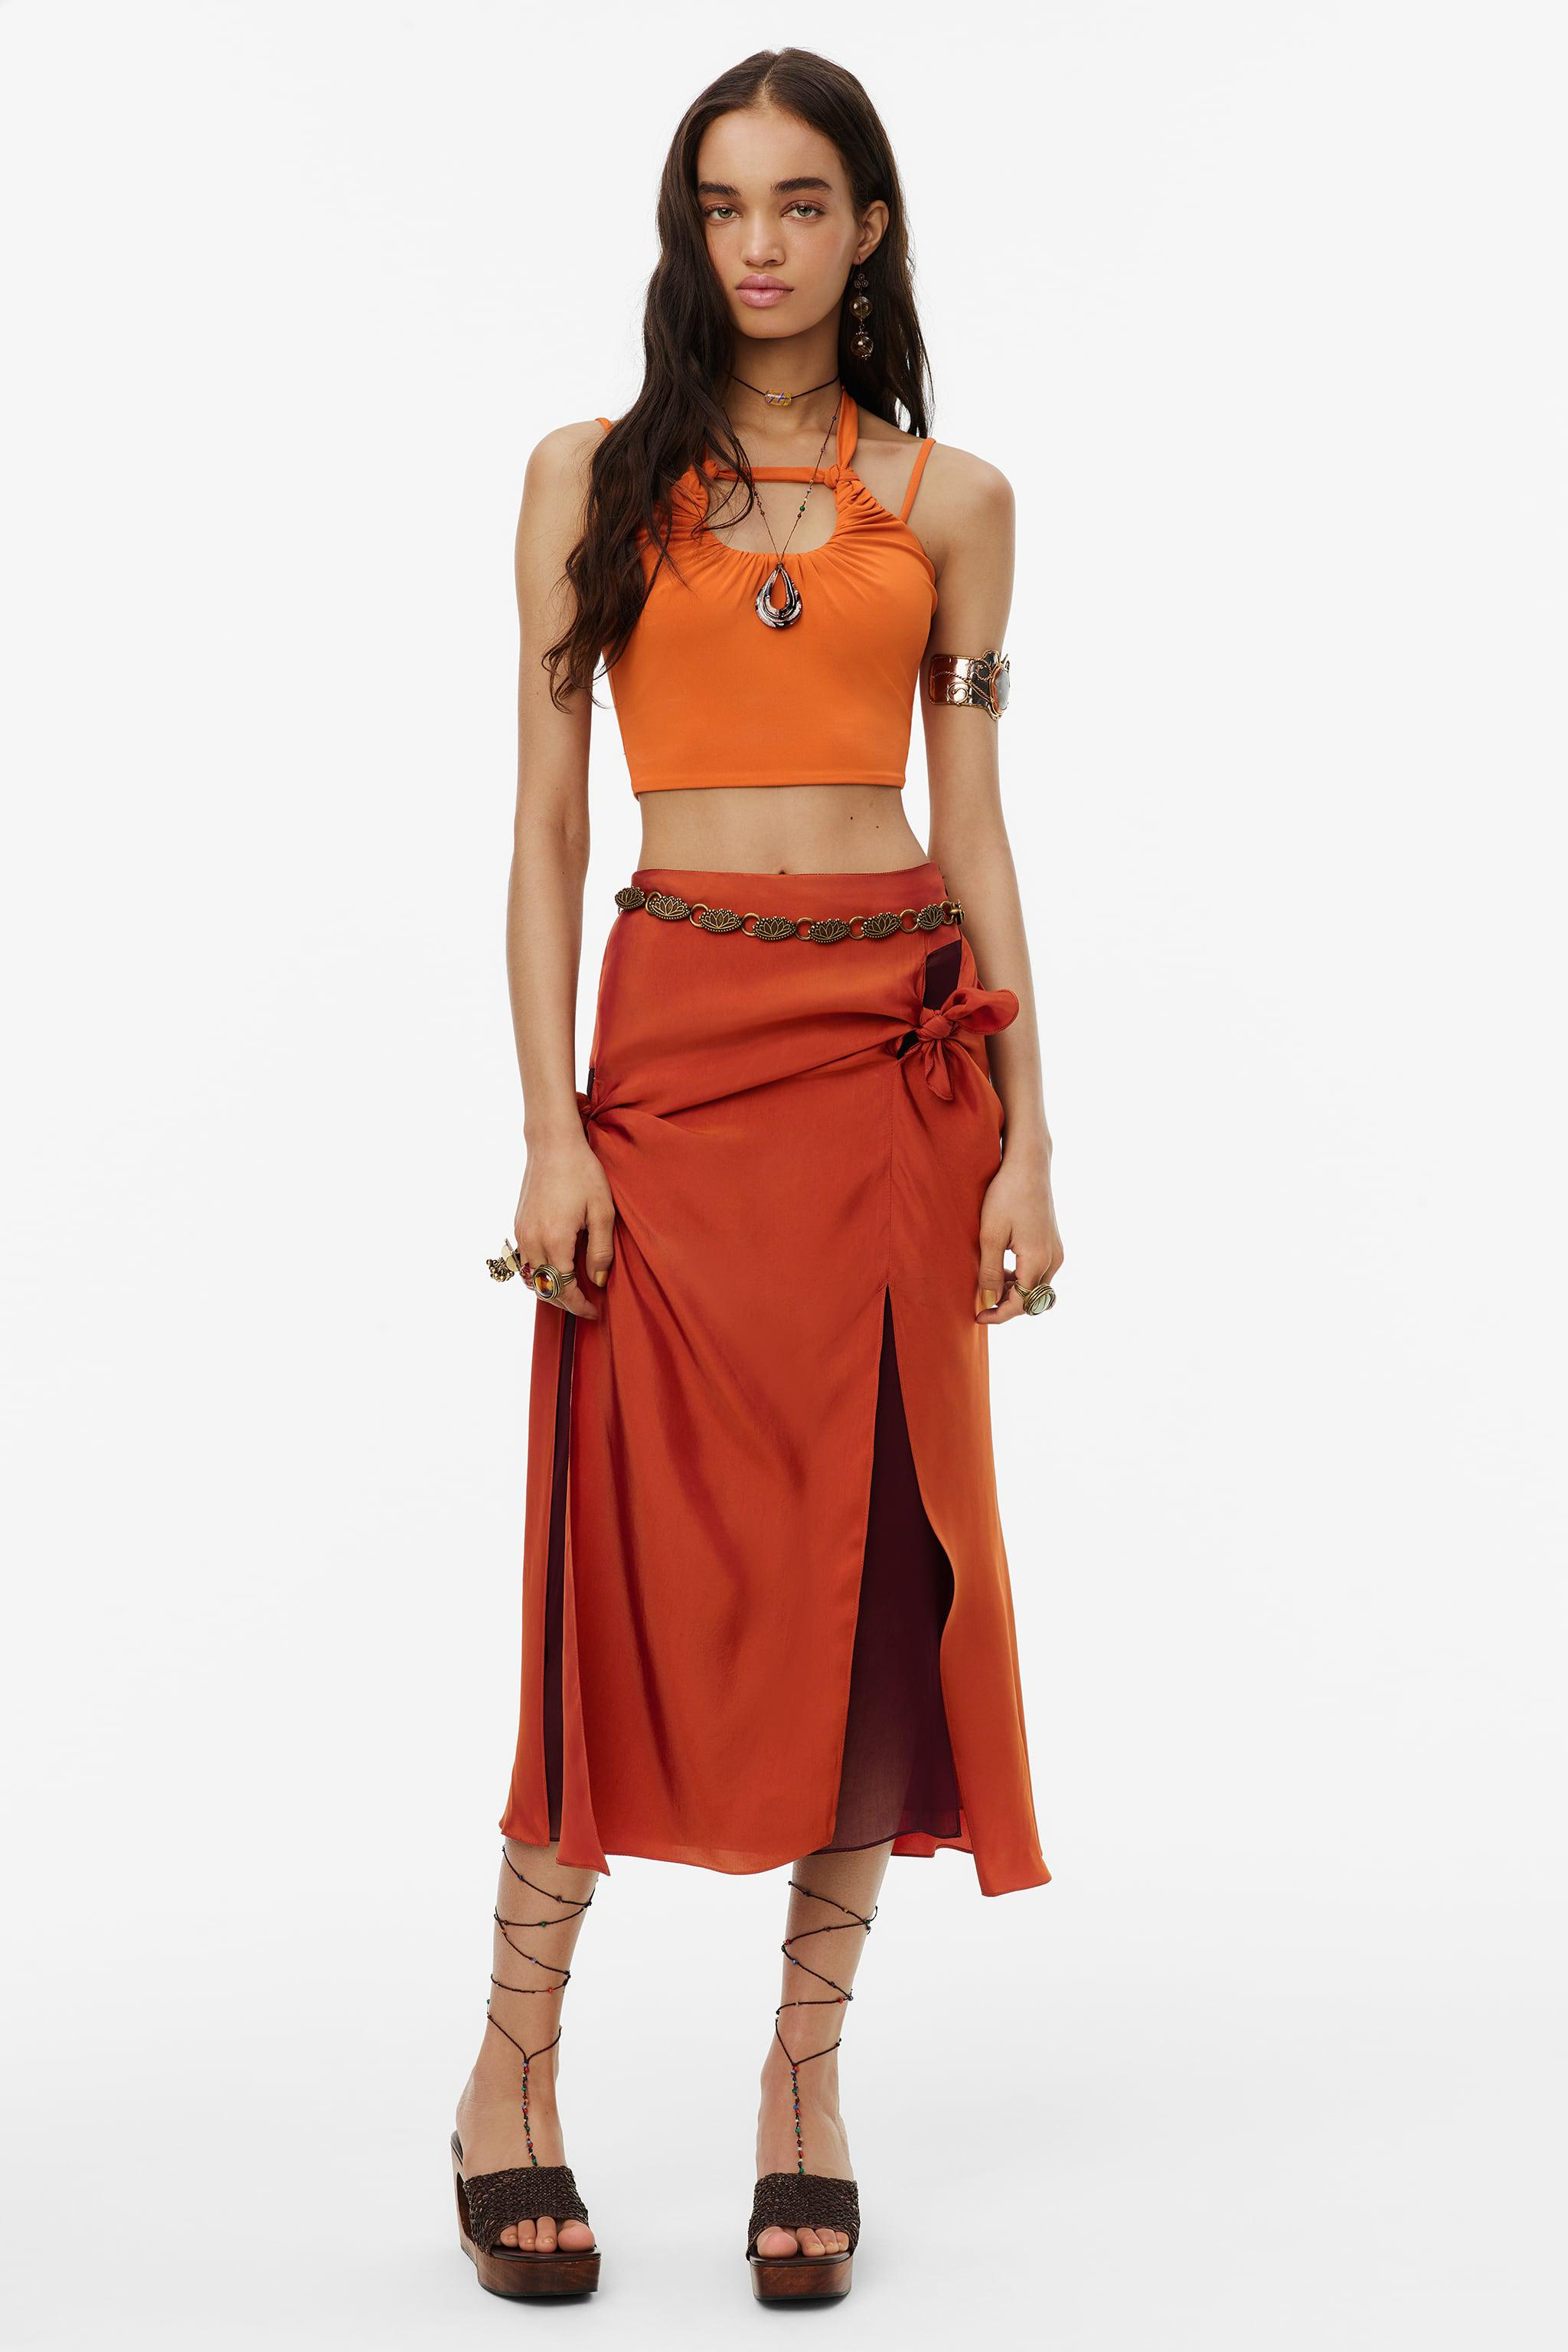 KNOTTED SKIRT LIMITED EDITION